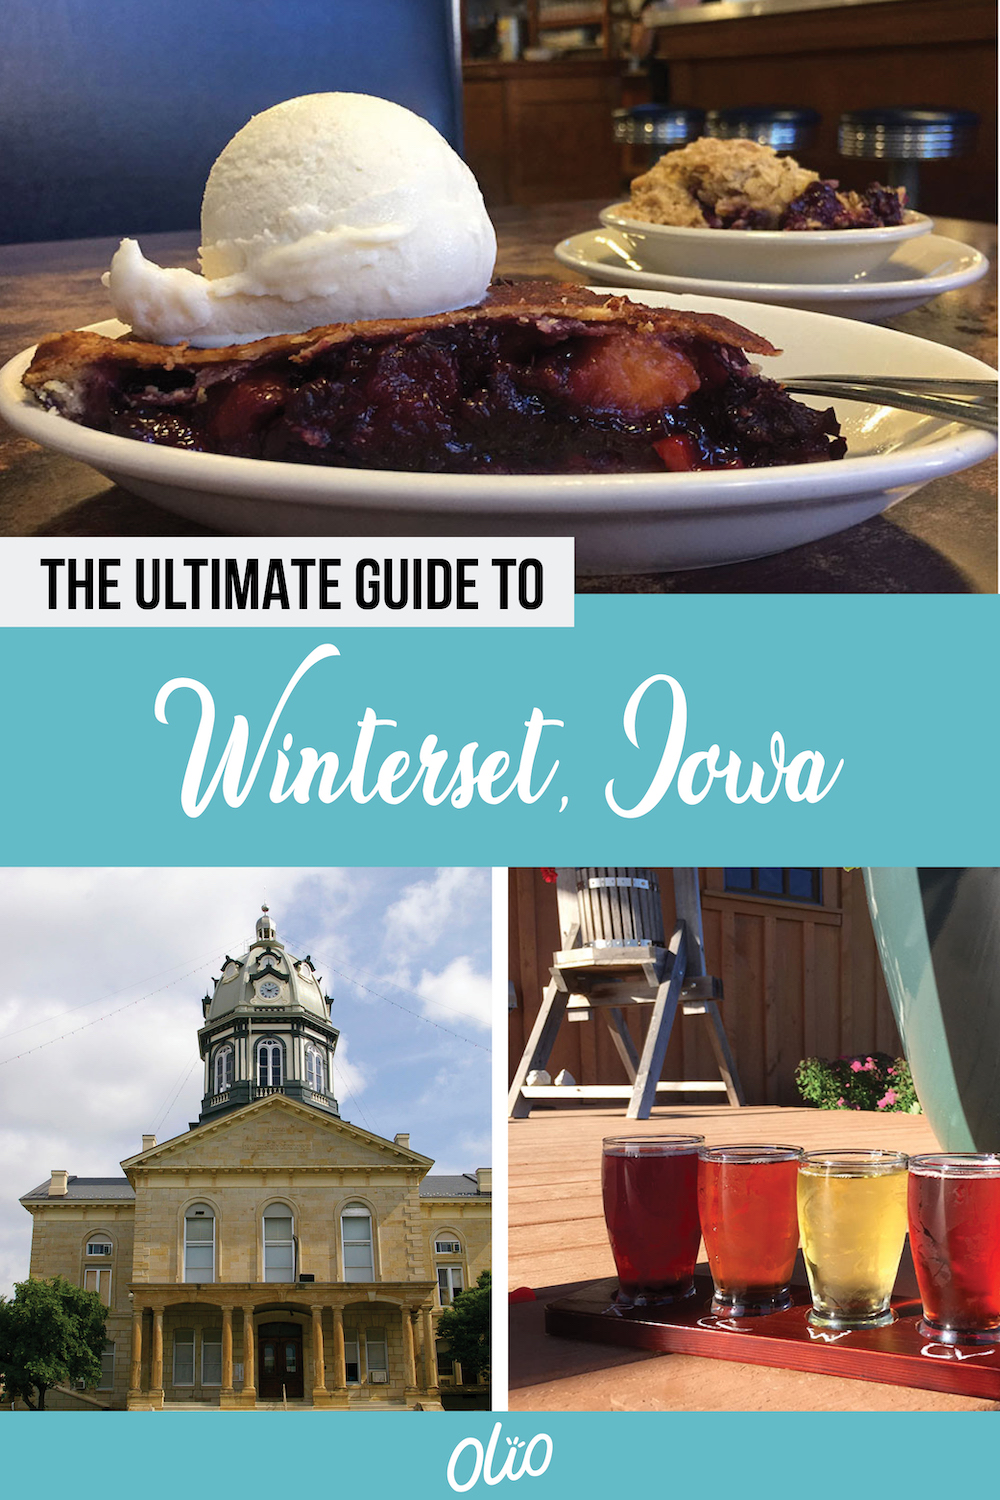 There's so much more to see in Winterset, Iowa than its covered bridges and the birthplace of John Wayne! Discover a quintessential slice of America in this small Iowa community. Whether you're looking for a day of family fun, creative inspiration or incredible culinary offerings, Madison County won't disappoint. Discover why you need to add this Iowa town to your travel bucket list!